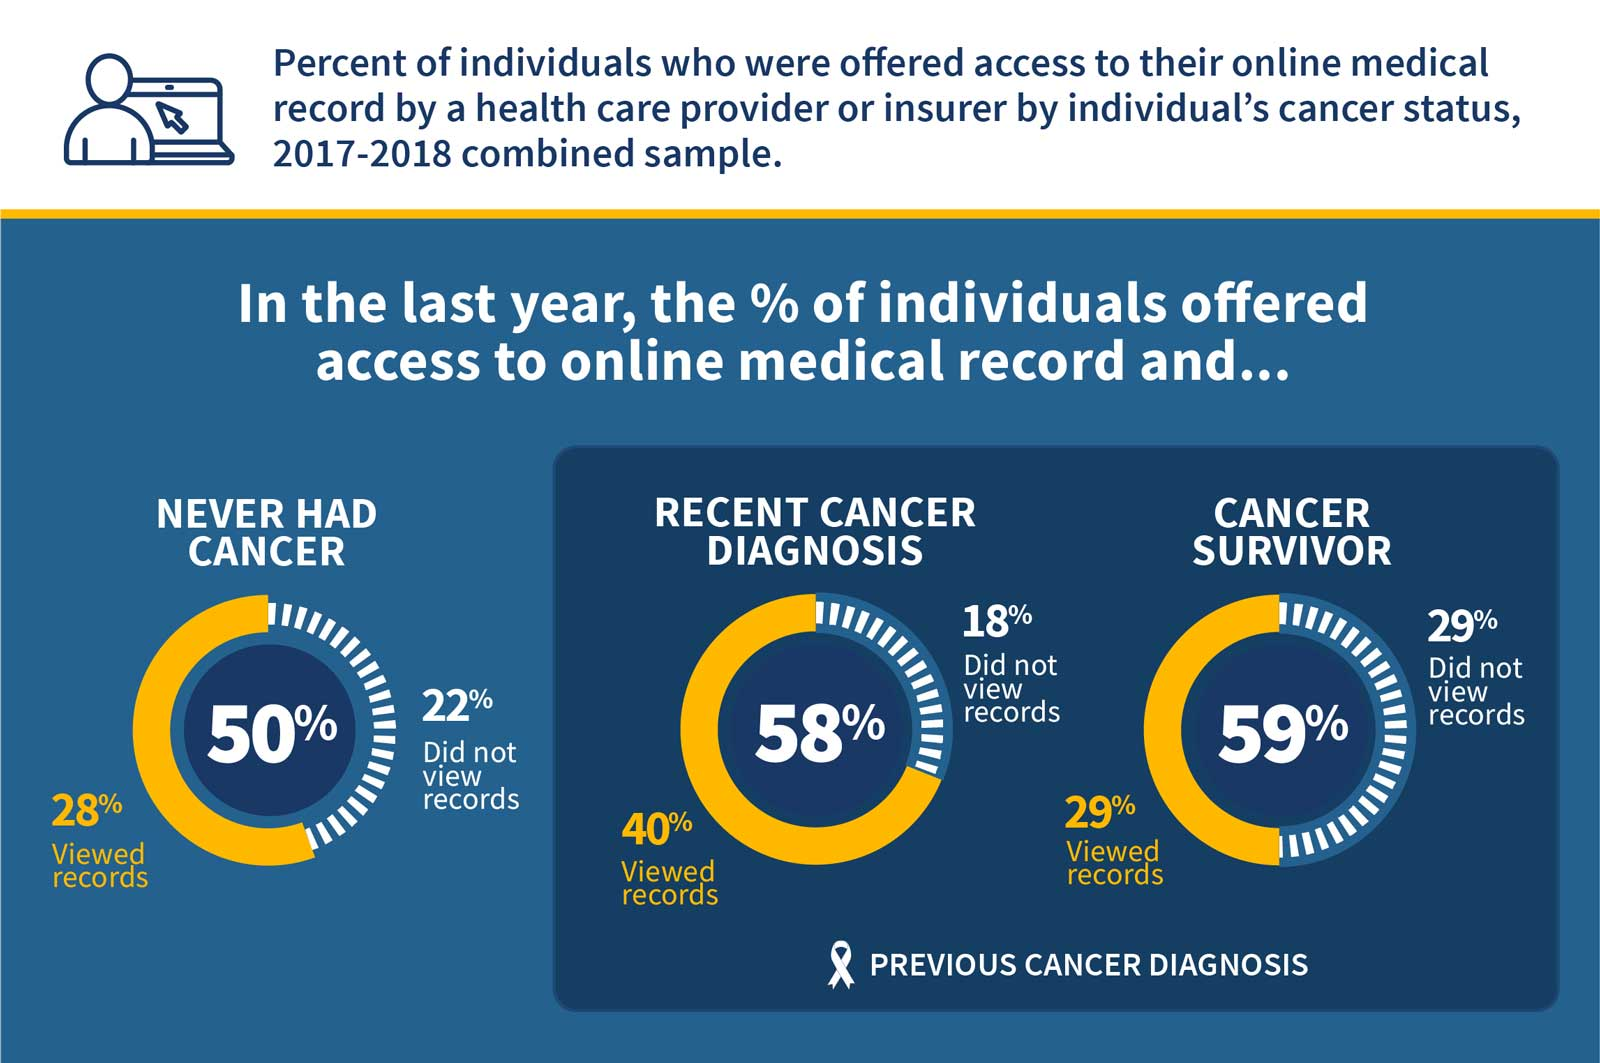 Figure 1: Percent of individuals who were offered access to their online medical record by a health care provider or insurer by individual's cancer status, 2017-2018 combined sample.